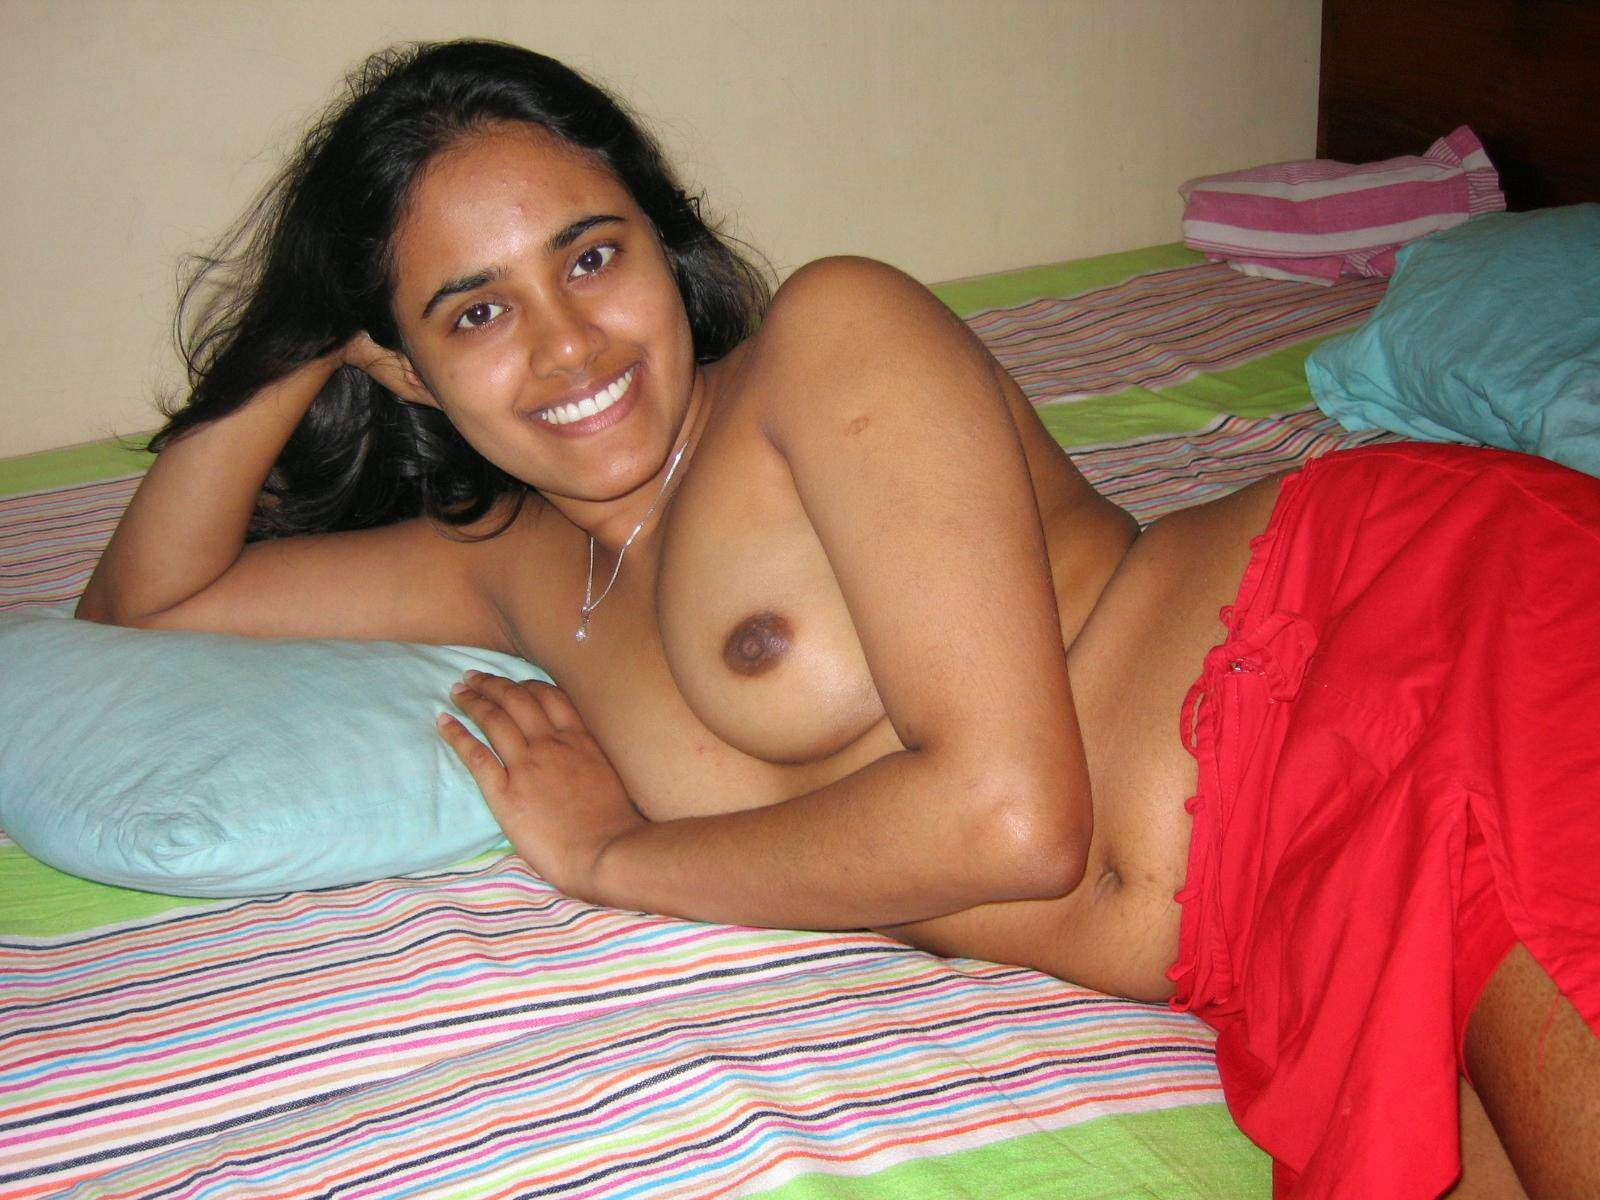 Simply Sri lankan young girl naked photo very